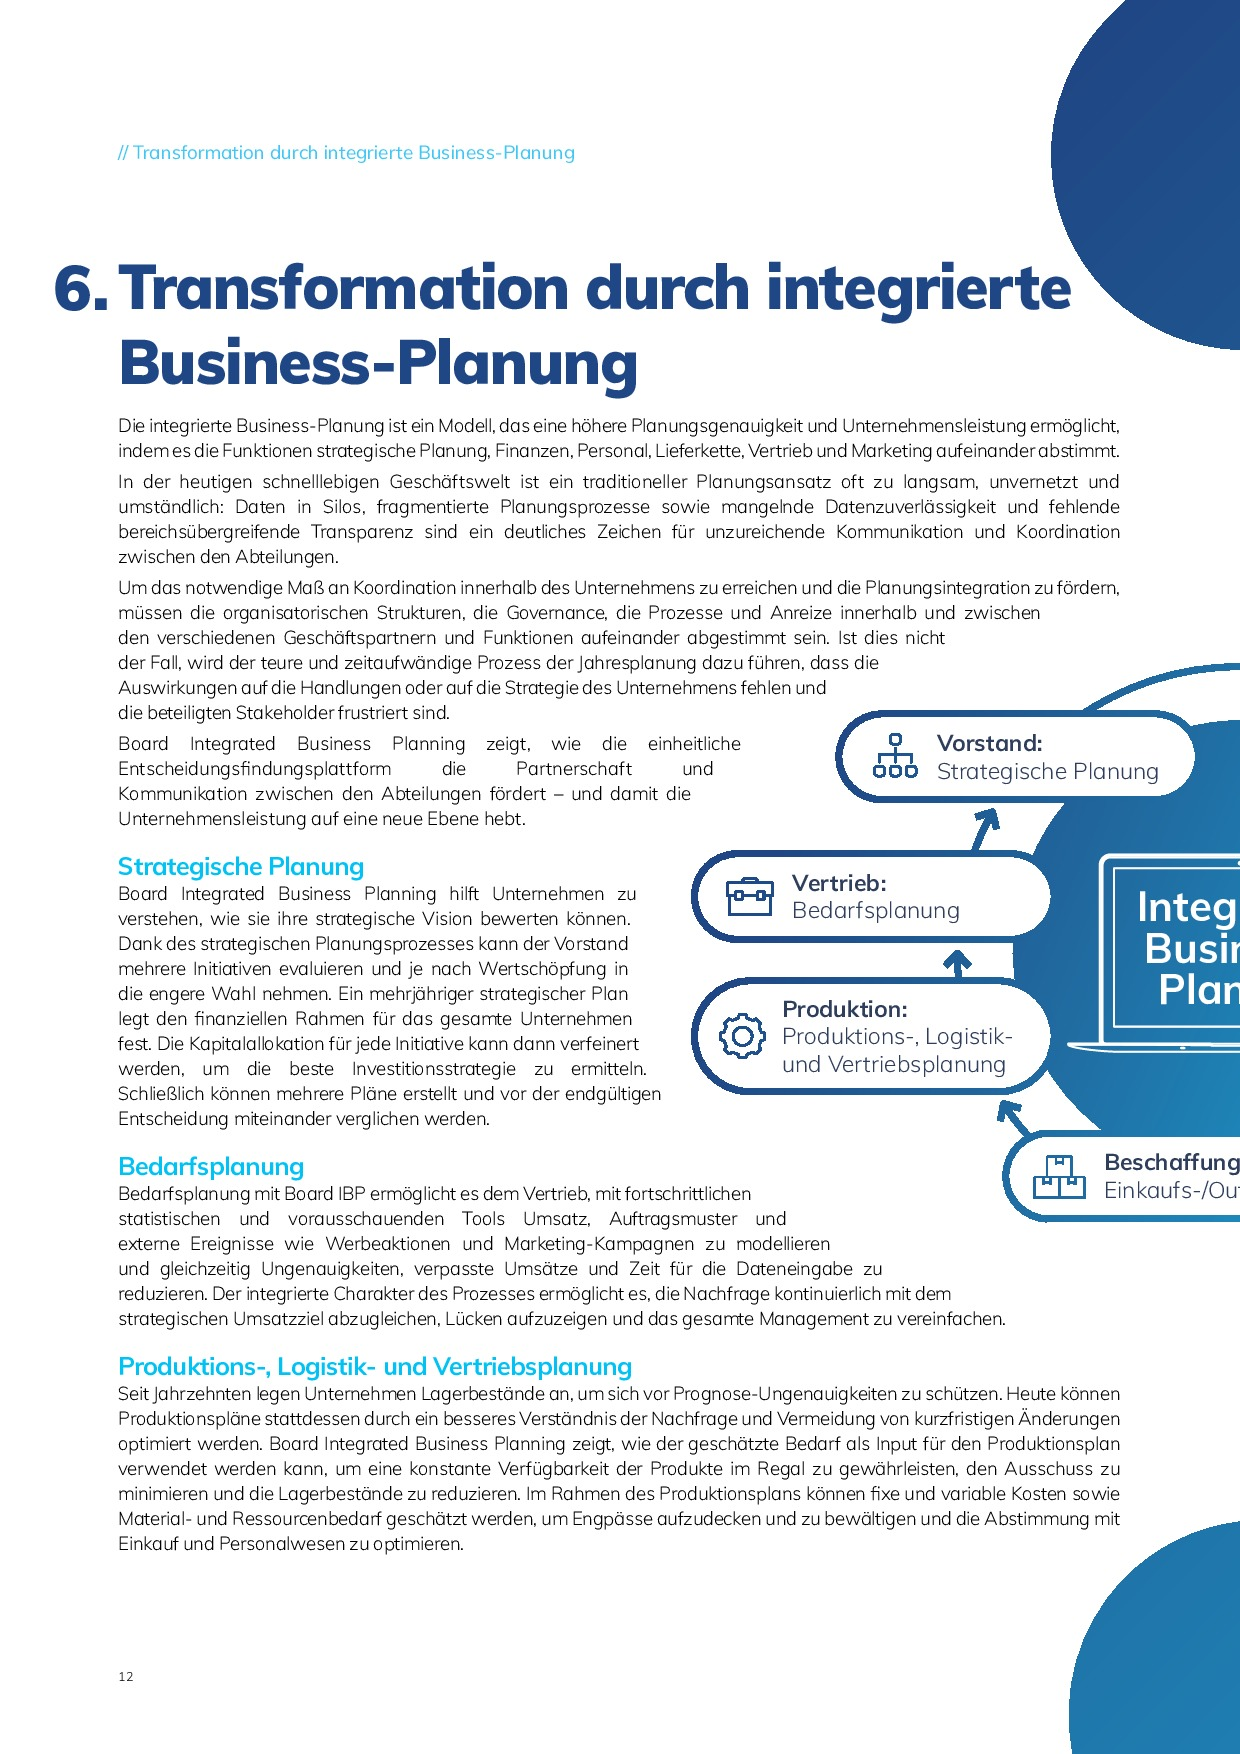 Integrierte Business-Planung | Page 12